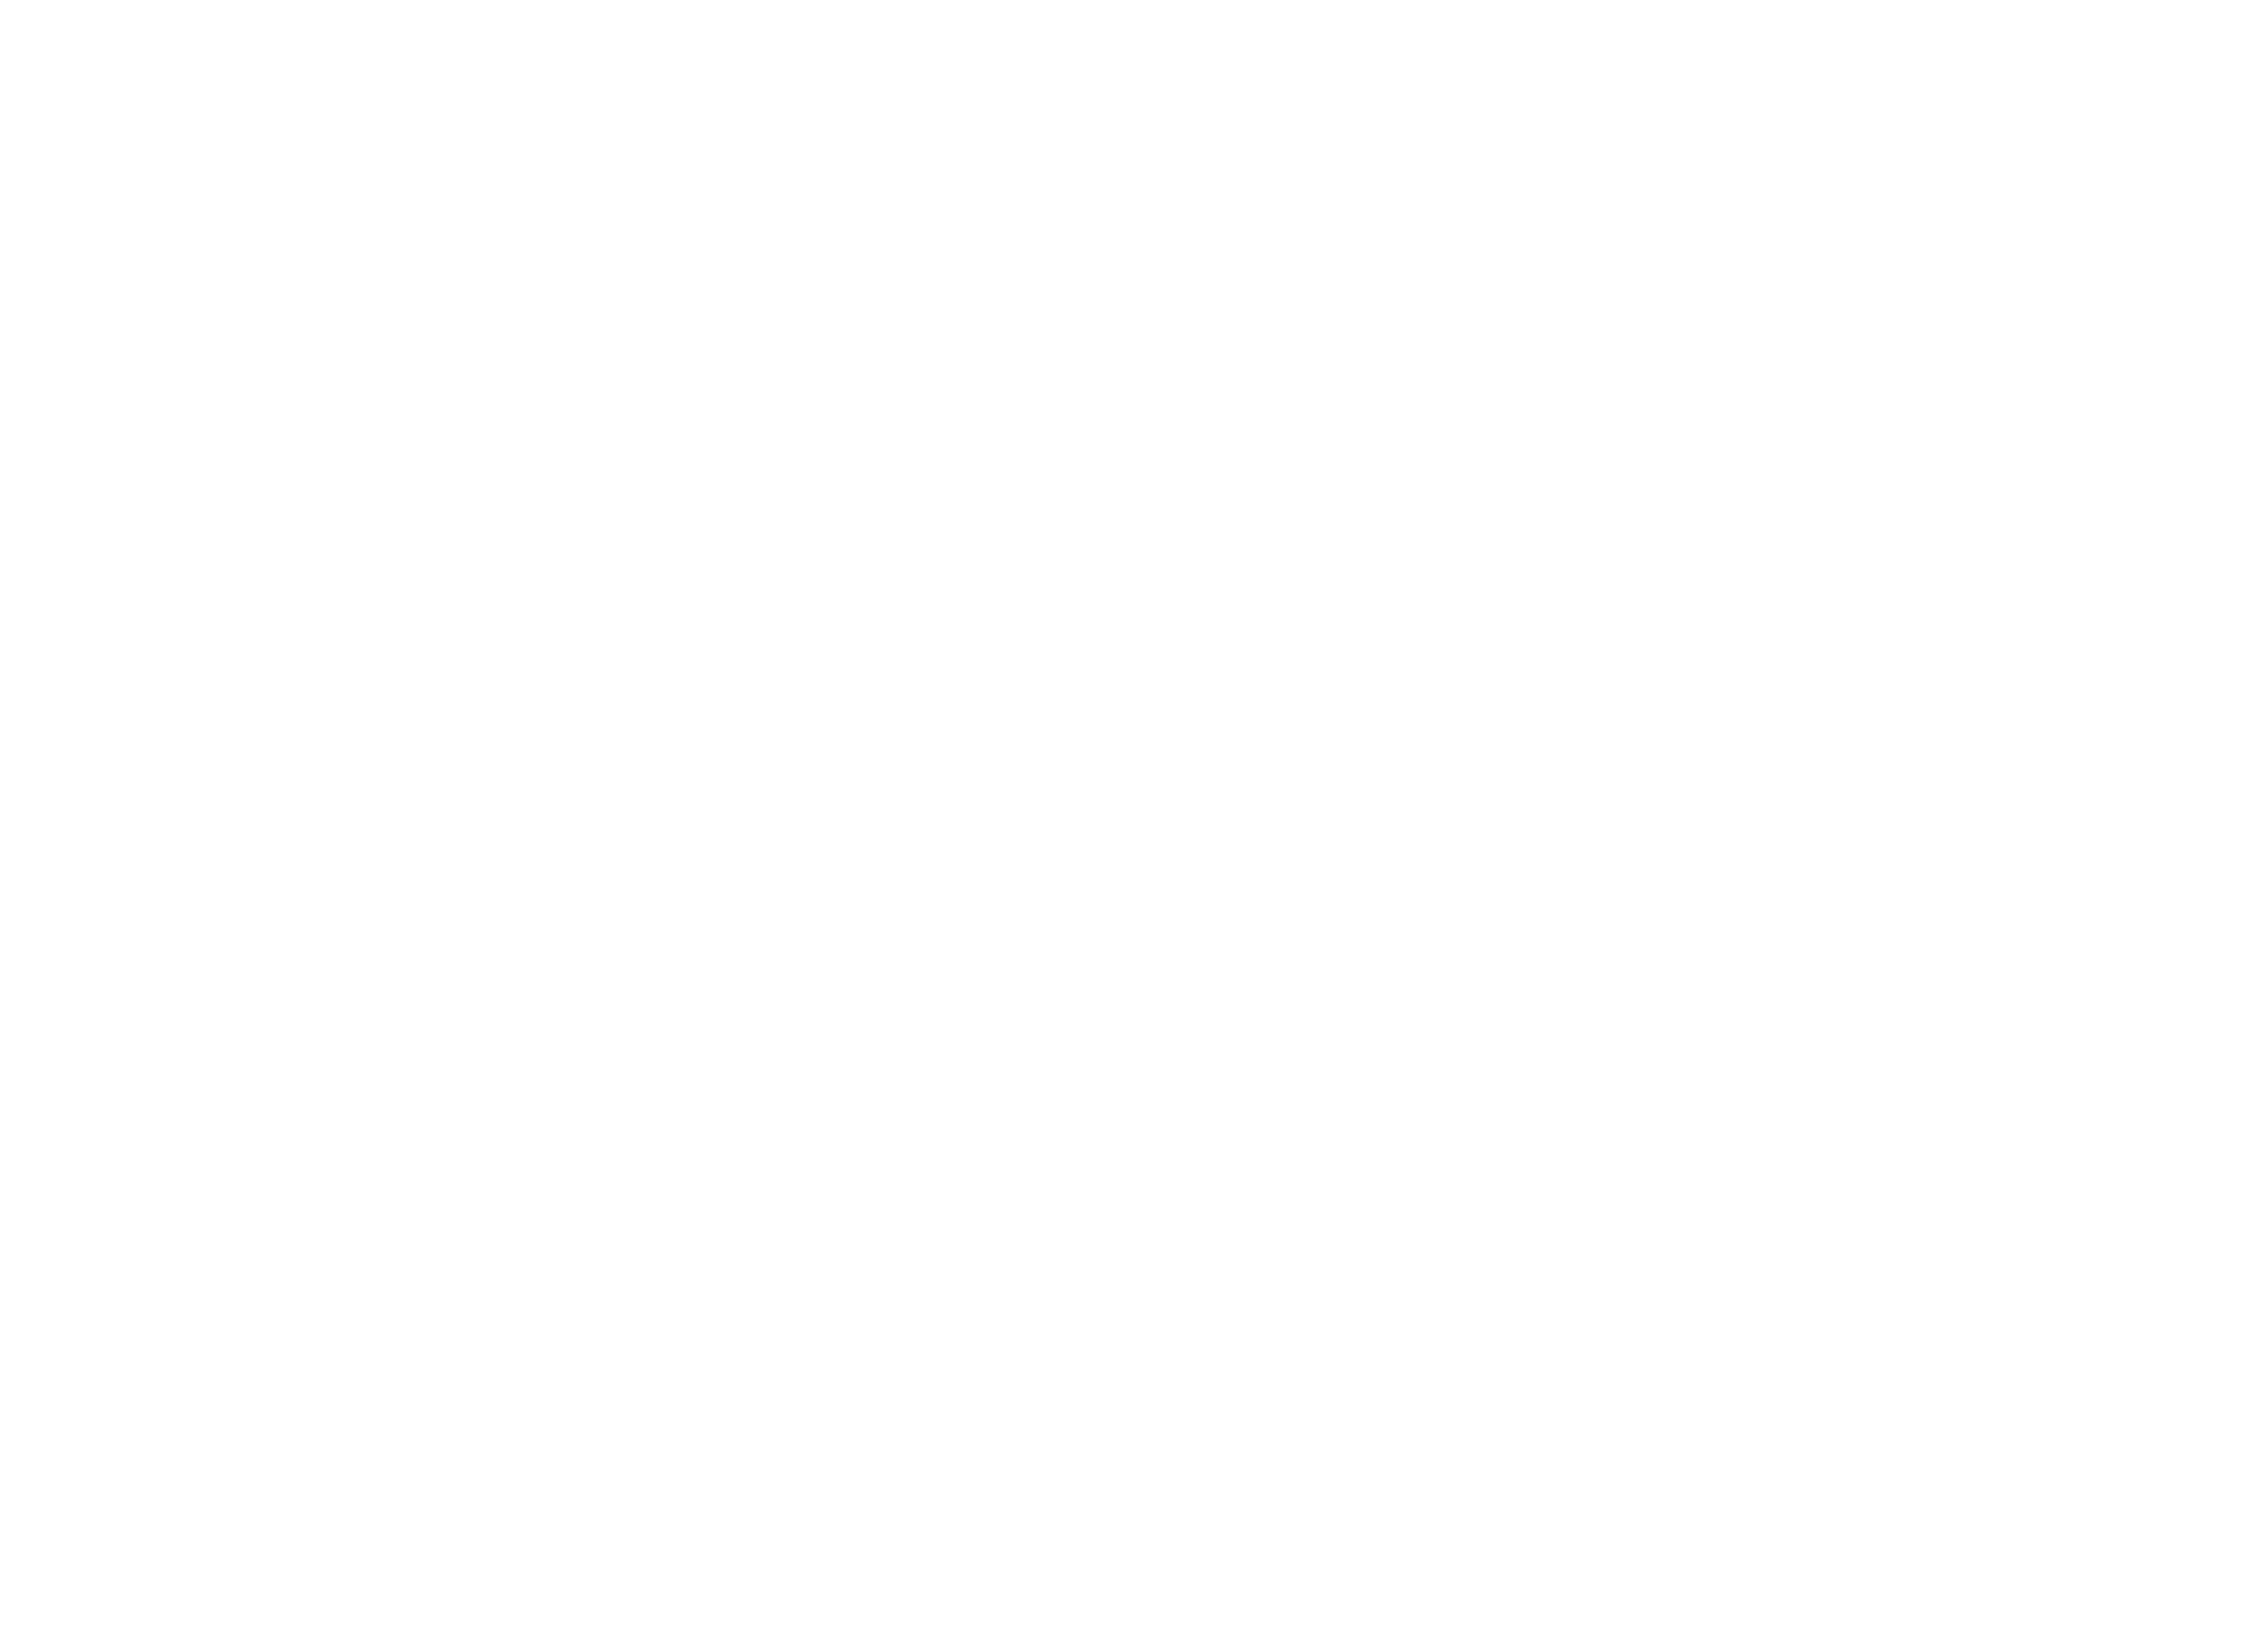 Cw services facility services with outlook and purpose toyota trademark office logo buycottarizona